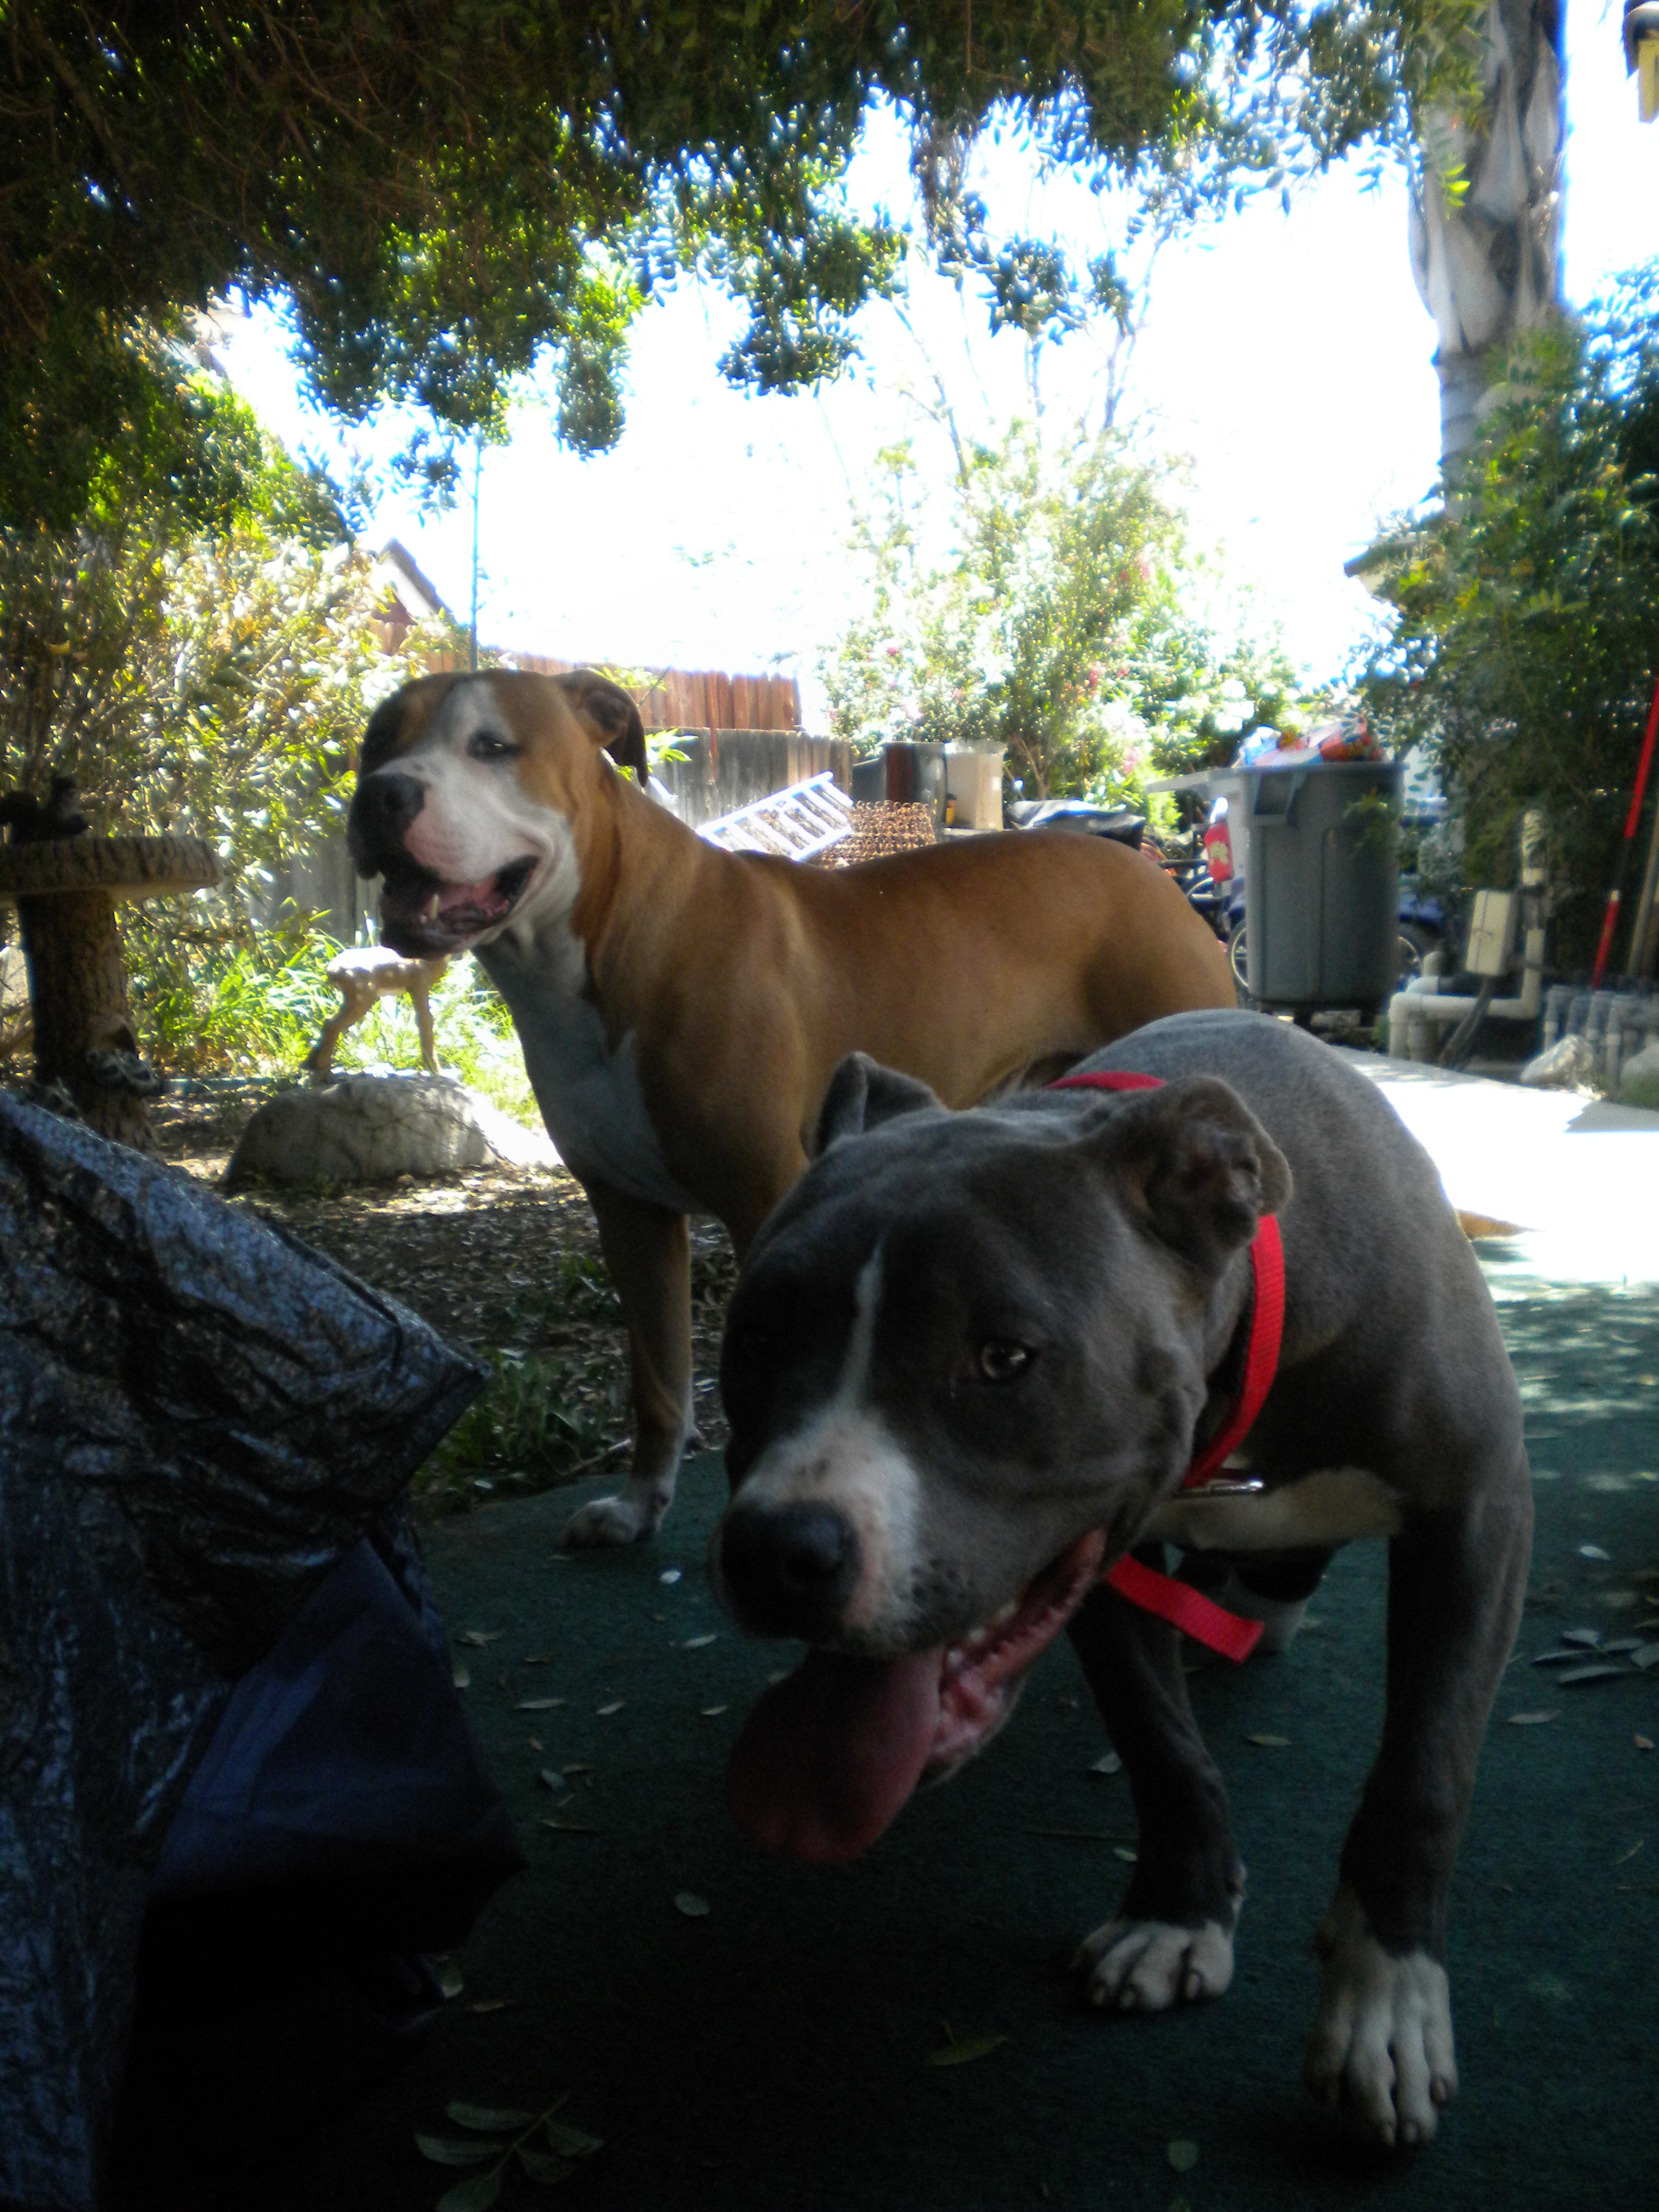 Splendiferous On Pitbulls How Long Do Pit Bulls Live Dog Years How Long Do Pit Bulls Live Meme So As You May Already I Have A Year Pitbull Puppy Named Raised Him Since He Was He Goes Everywhere bark post How Long Do Pitbulls Live